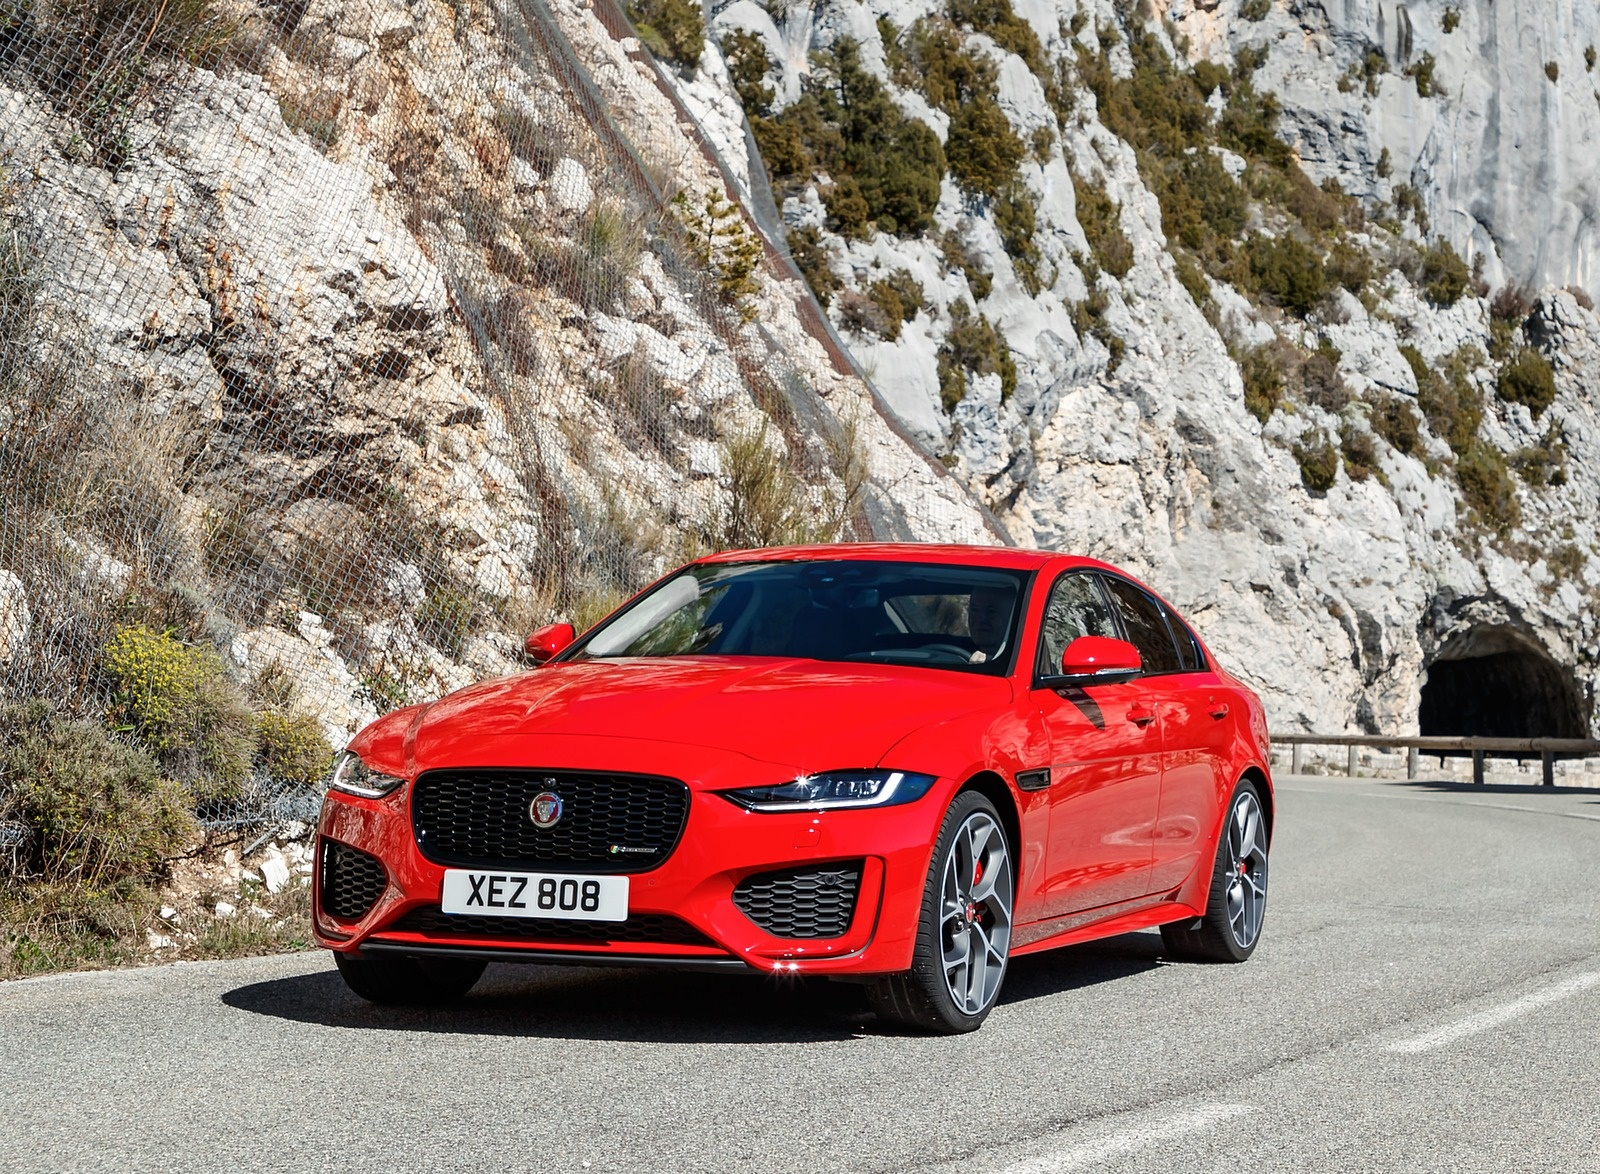 2020 Jaguar XE S R-Dynamic P300 (Color: Caldera Red) Front Three-Quarter Wallpapers (10)